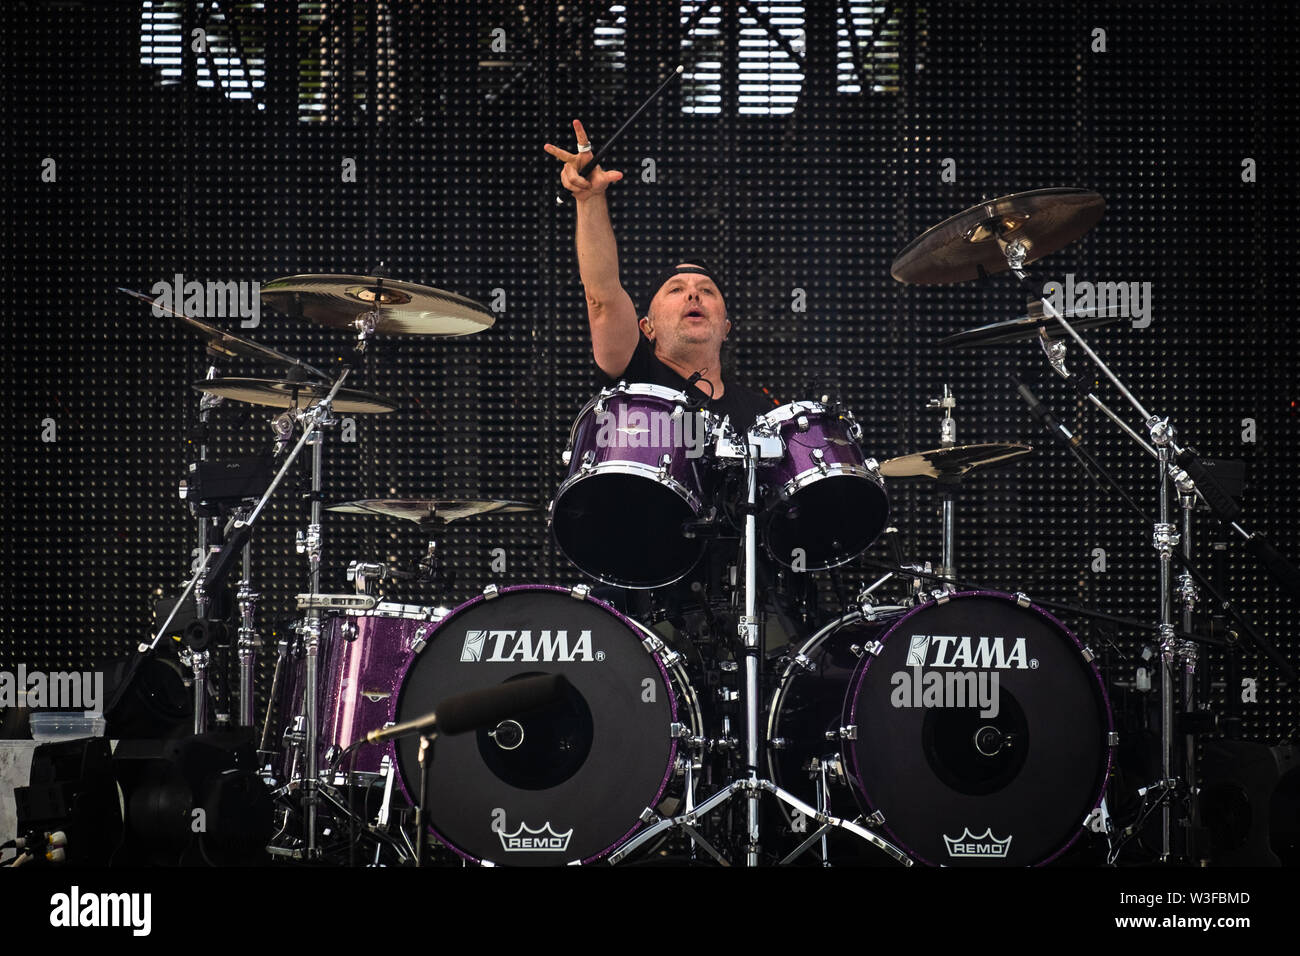 Trondheim, Norway - July 13th, 2019. The American heavy metal band Metallica performs live concerts at Granåsen Arena in Trondheim. Here drummer Lars Ulrich is seen live on stage. (Photo credit: Gonzales Photo - Tor Atle Kleven). - Stock Image